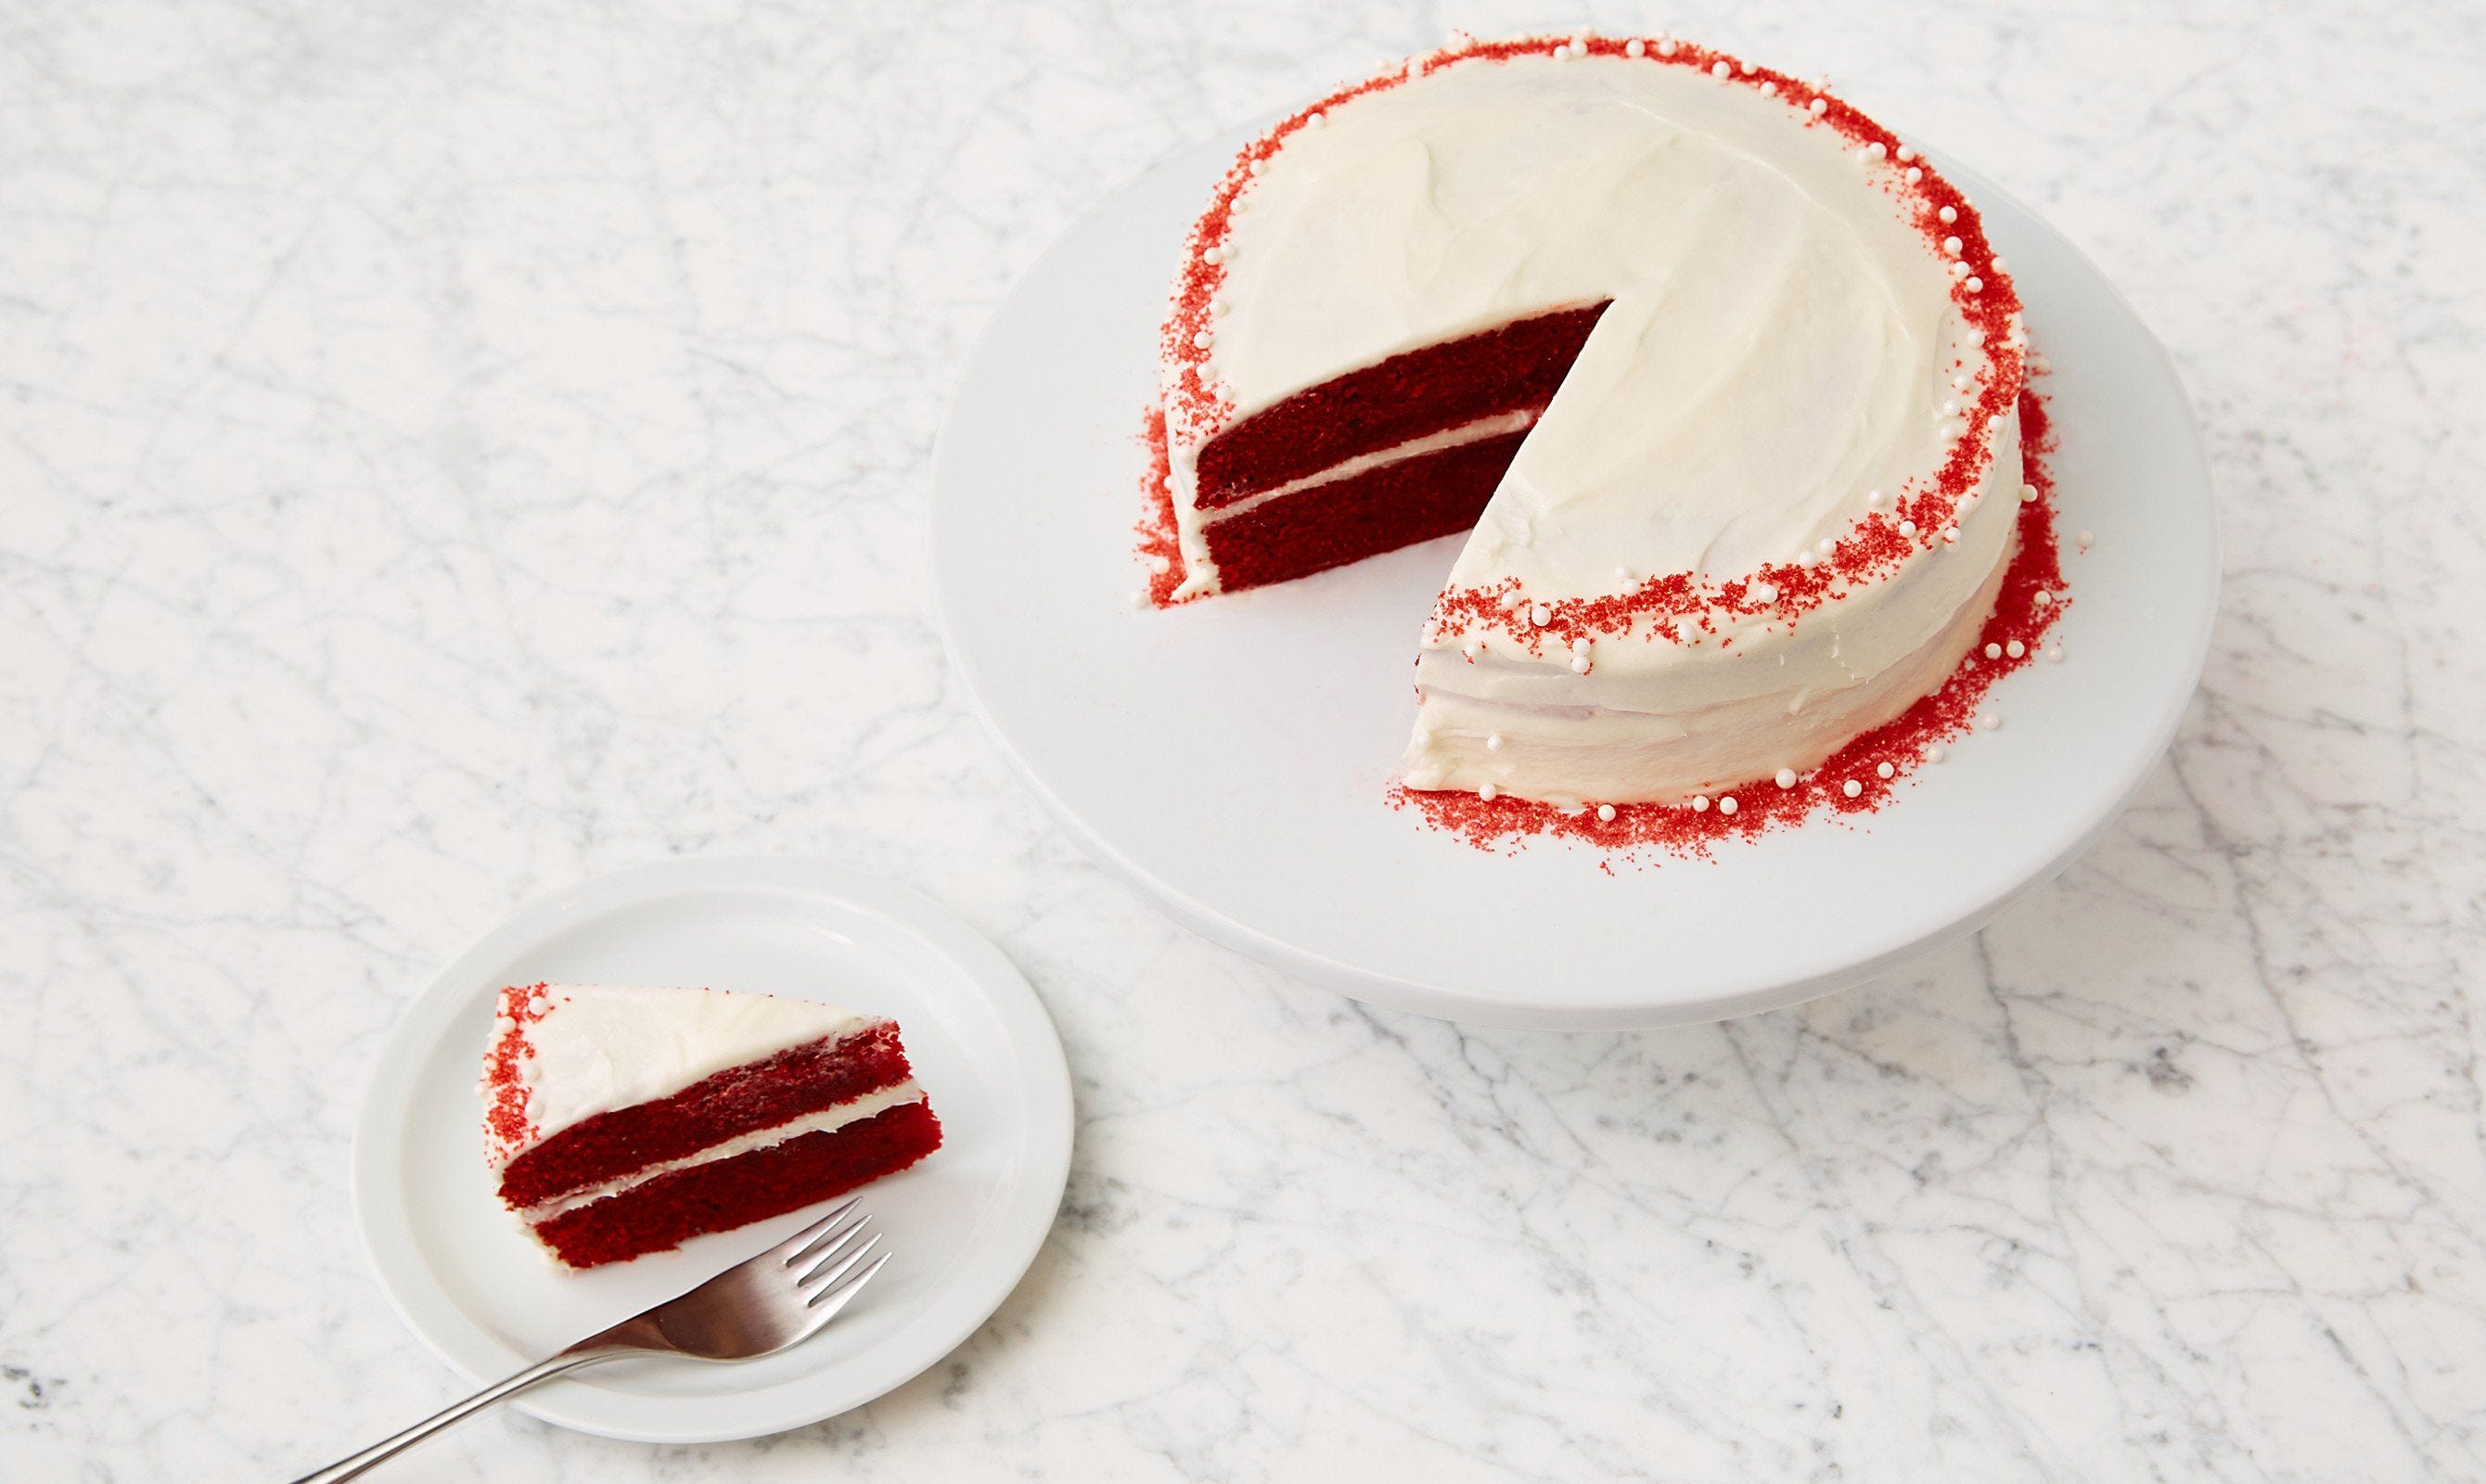 Red Velvet Cake with Cream Cheese Frosting recipe.